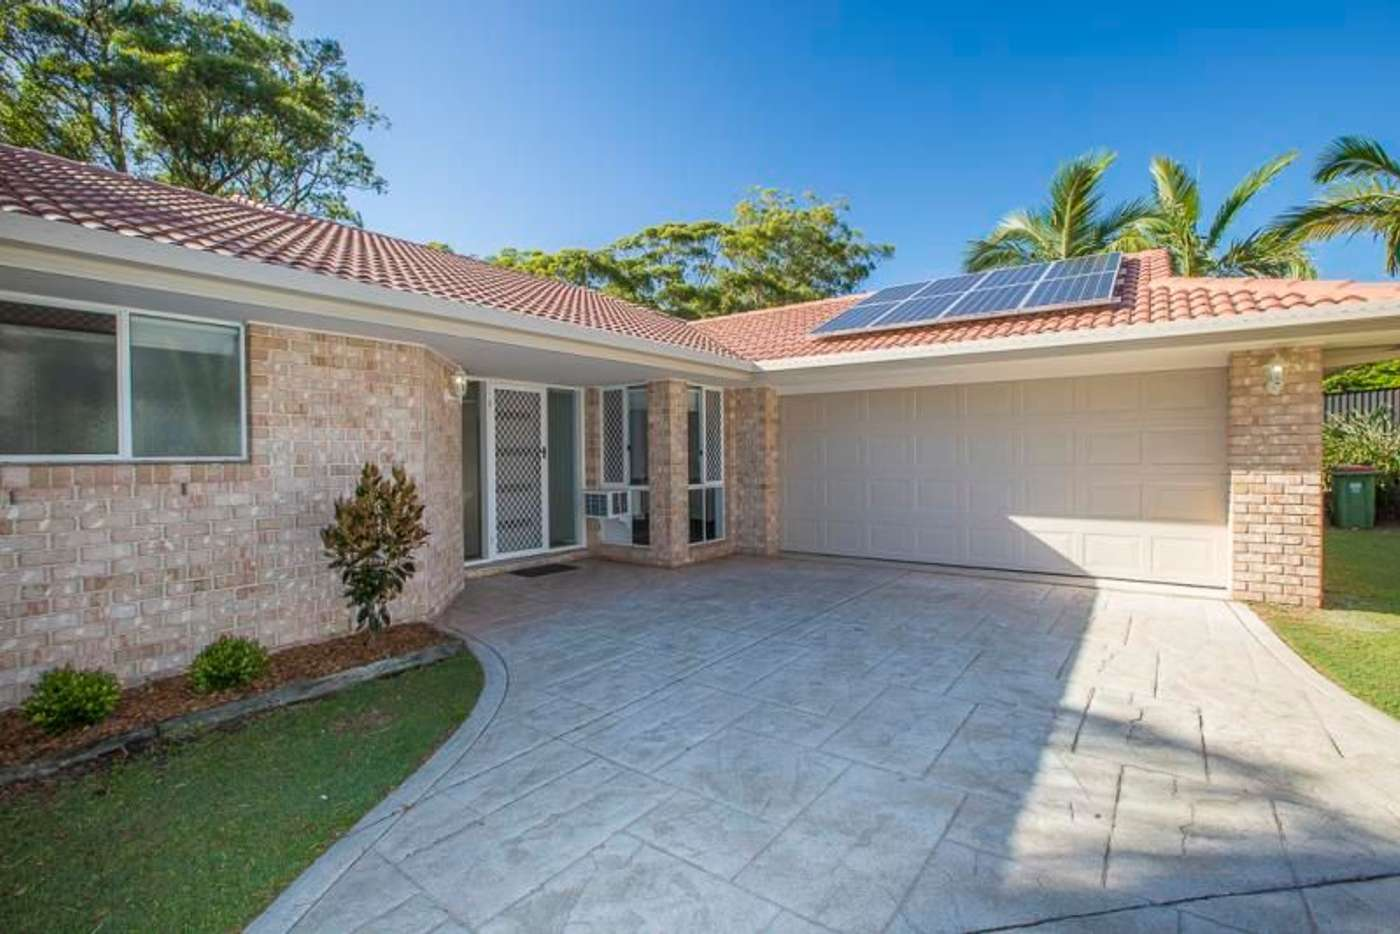 Main view of Homely house listing, 32 Ballybunion Drive, Parkwood QLD 4214